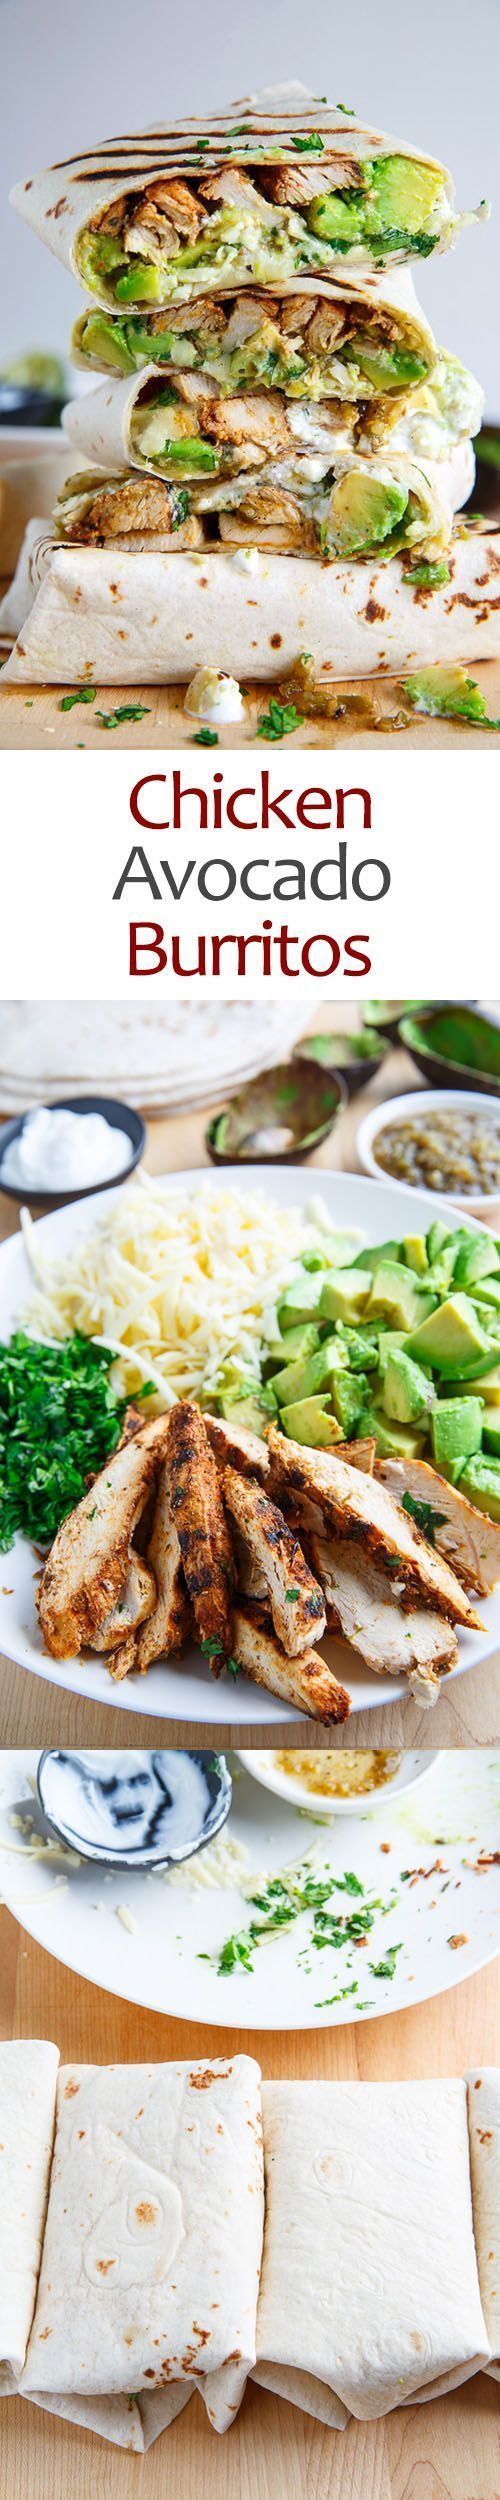 These Chicken and Avocado Burritos are so easy to make and delicious. They are one of my favorite healthy meals! utm_content=buffer6ee0d&utm_medium=social&utm_source=www.pinterest.com&utm_campaign=buffer